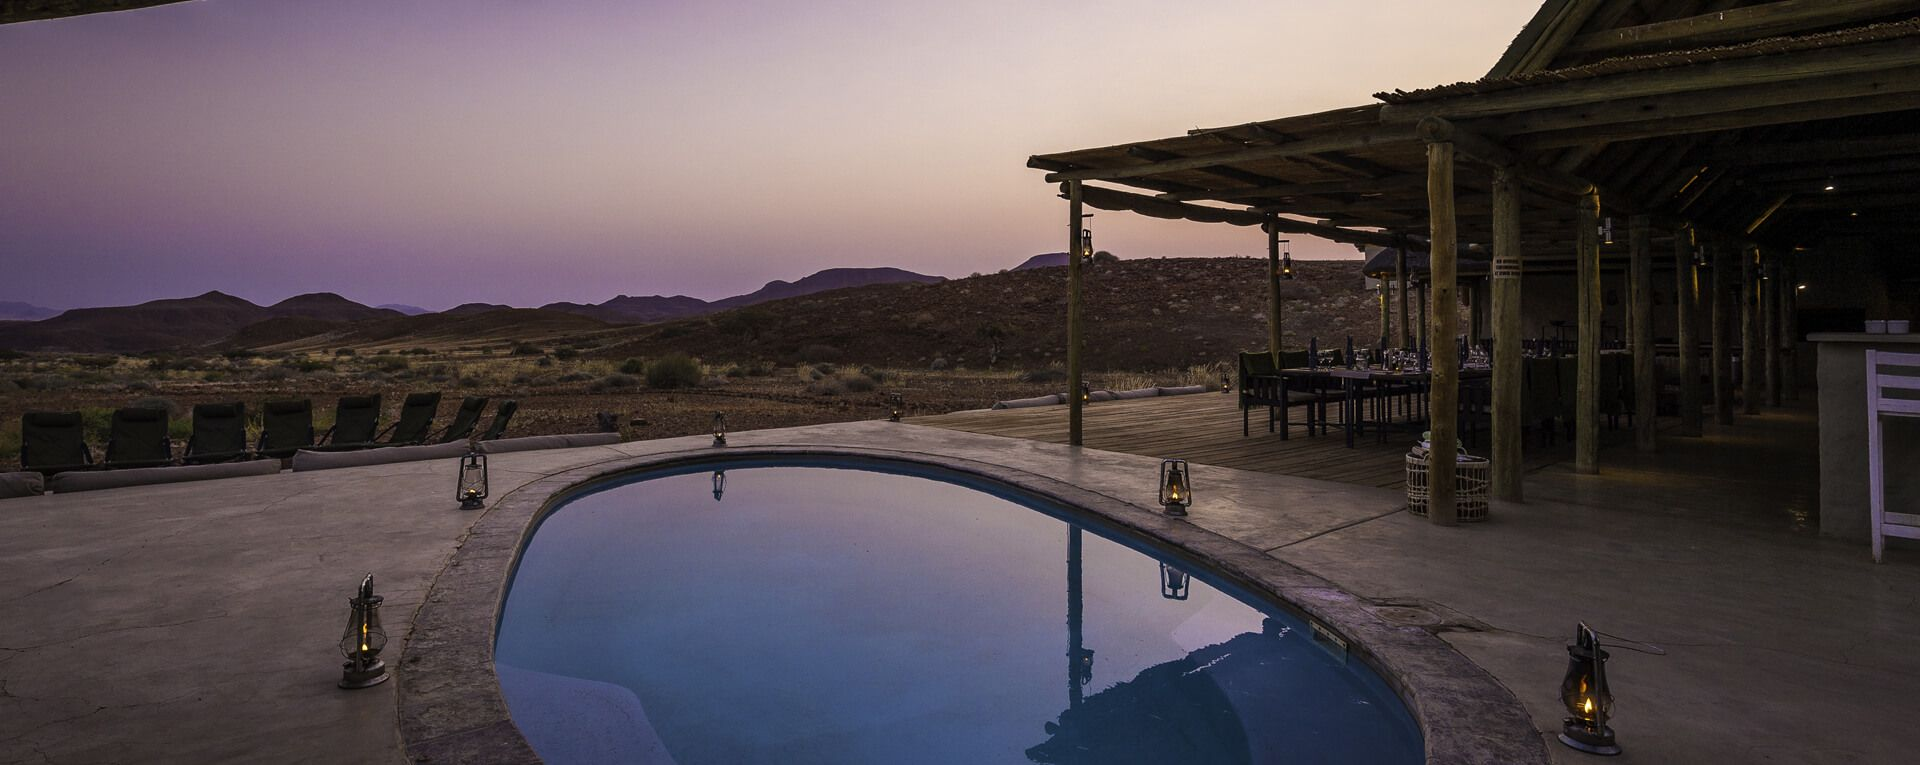 Damaraland Wilderness Camp